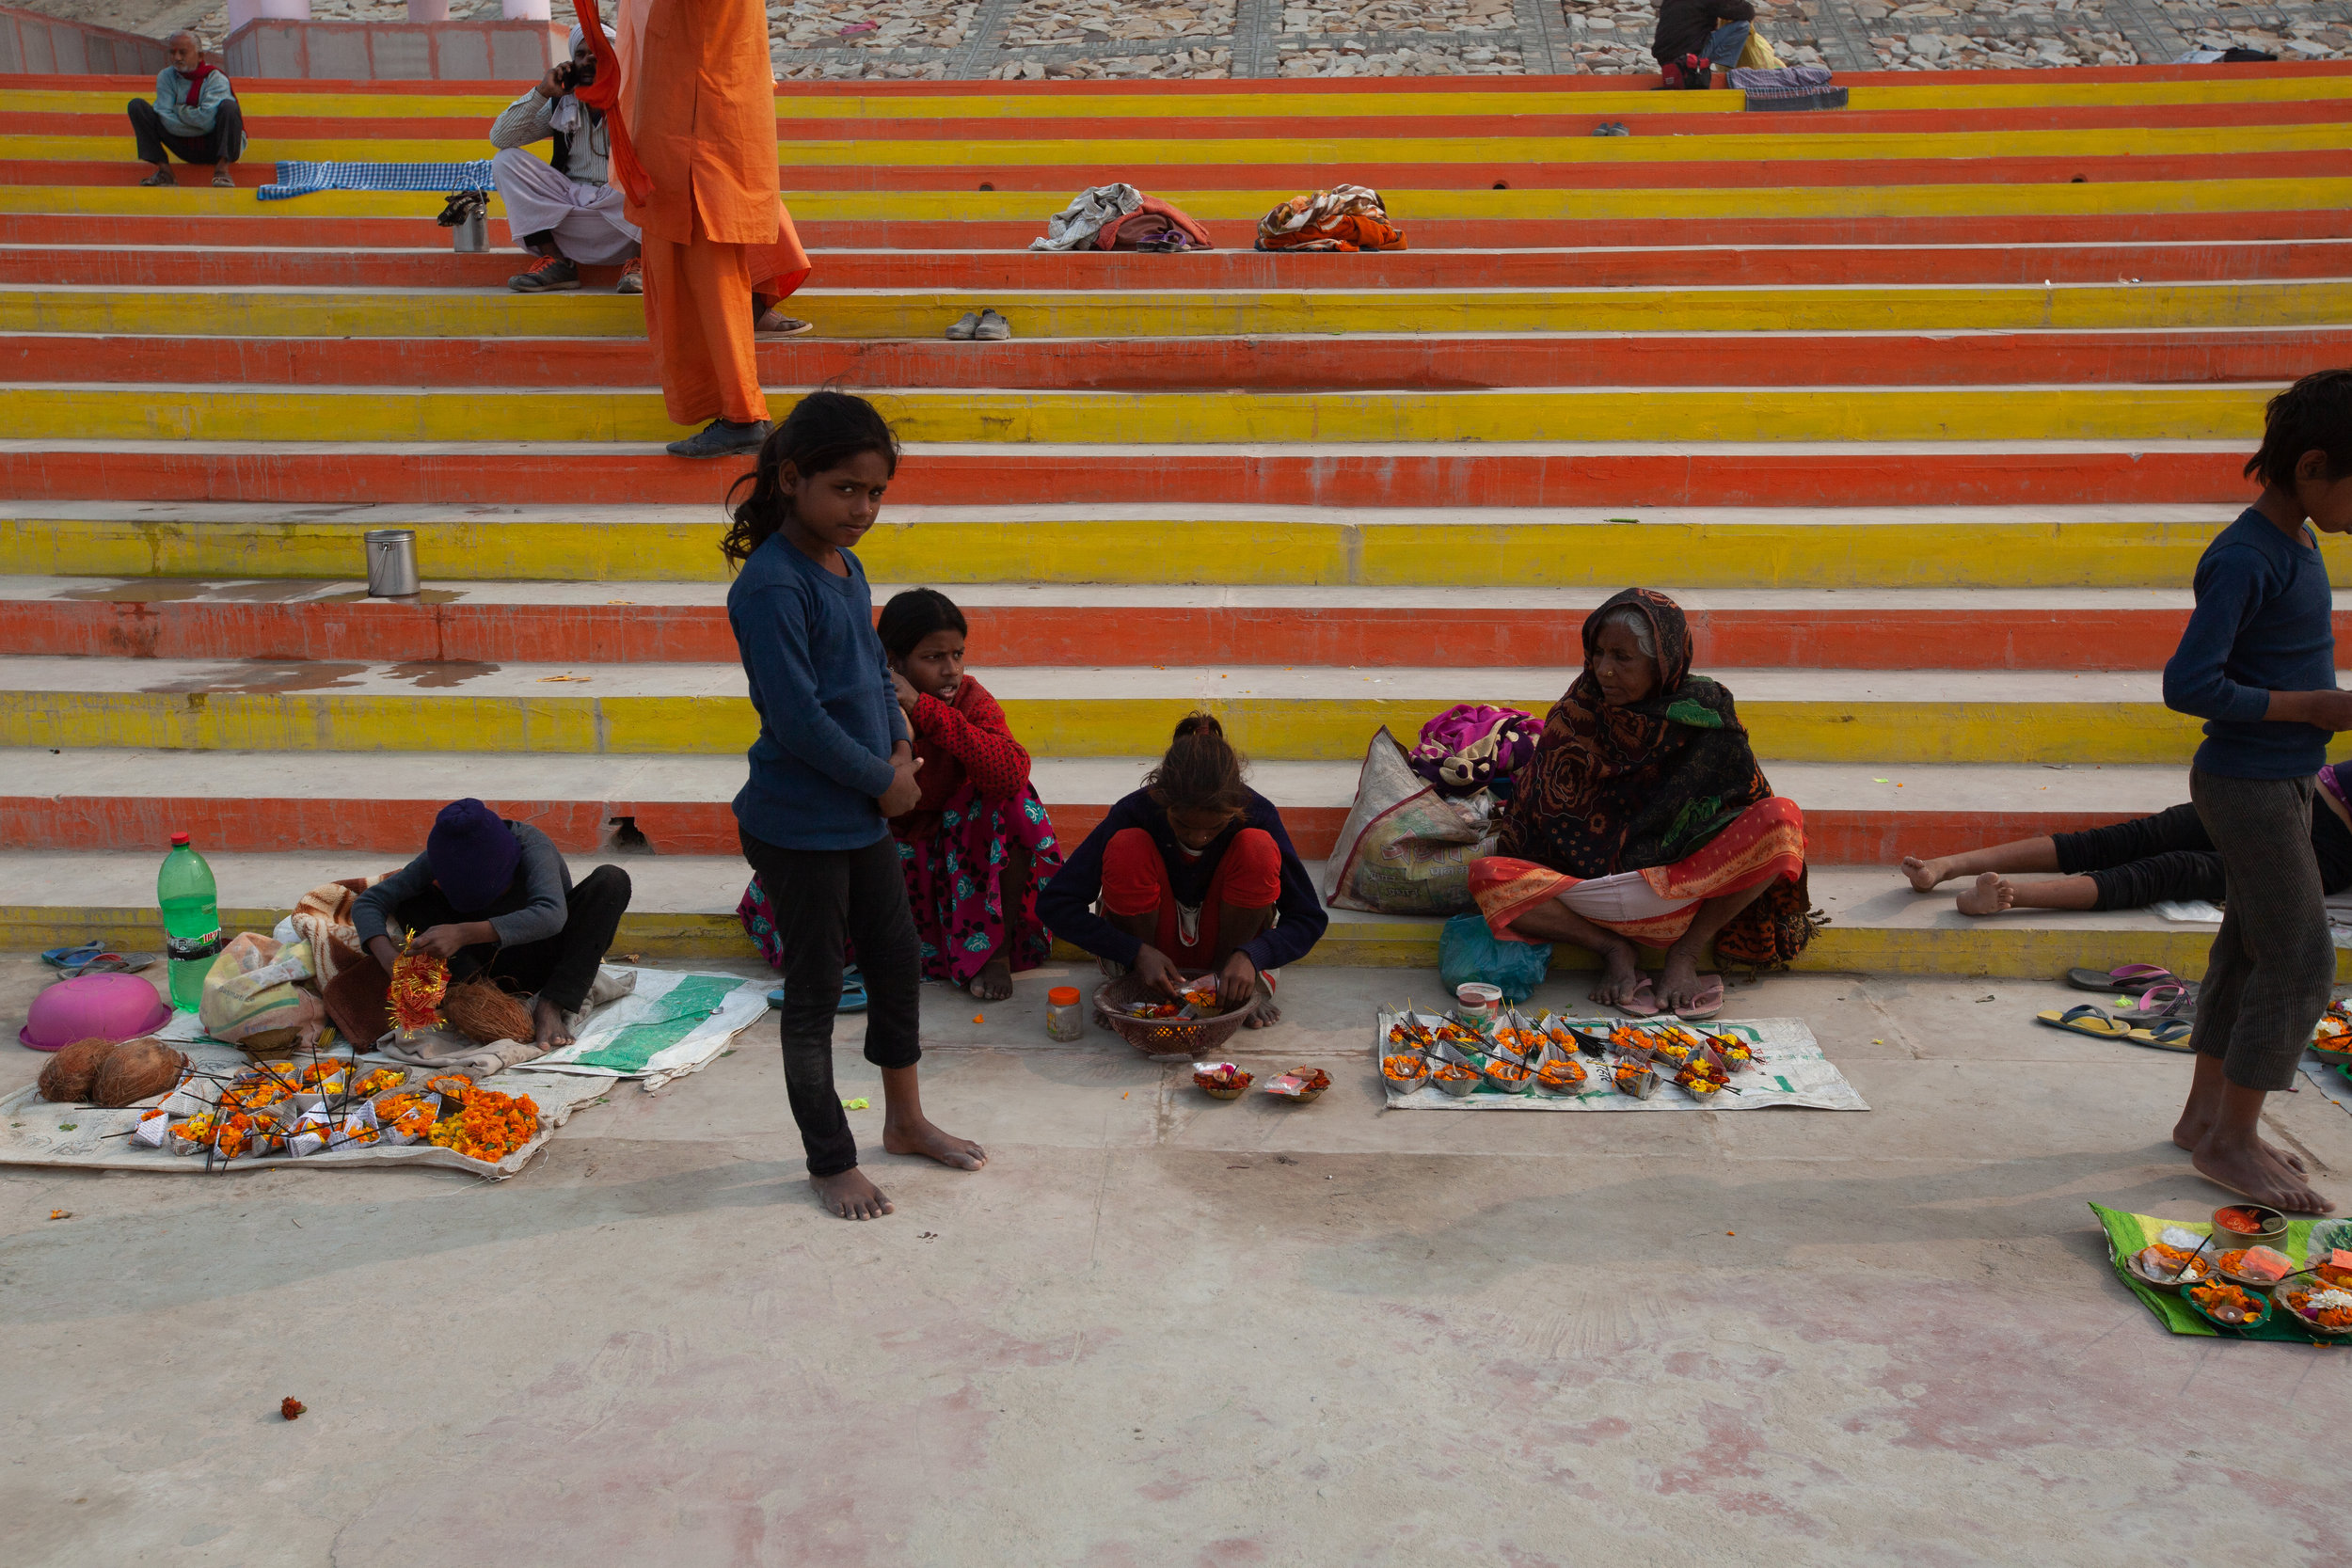 Selling Offerings for the Ganga